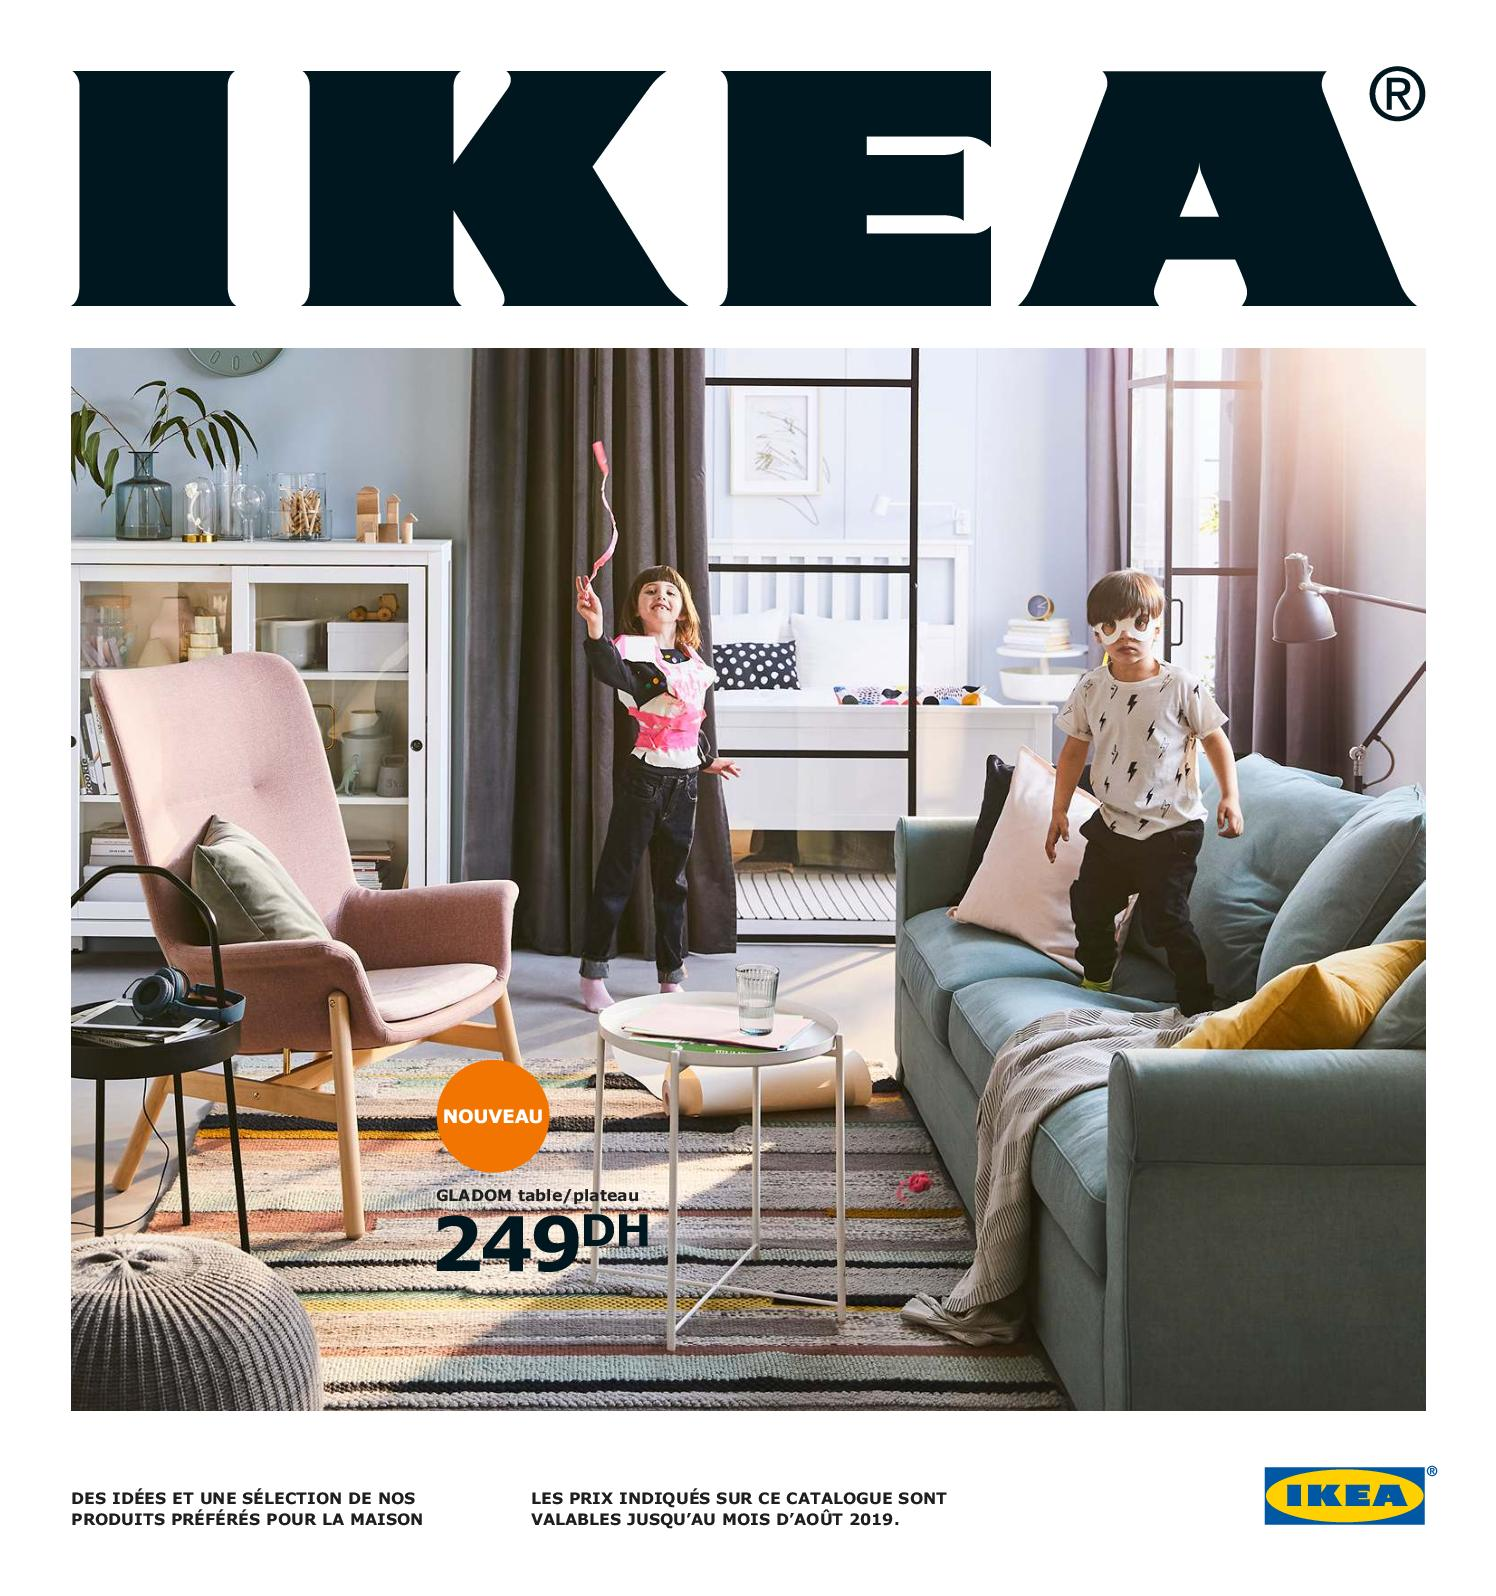 Trend Meuble Salon Complet Ikea